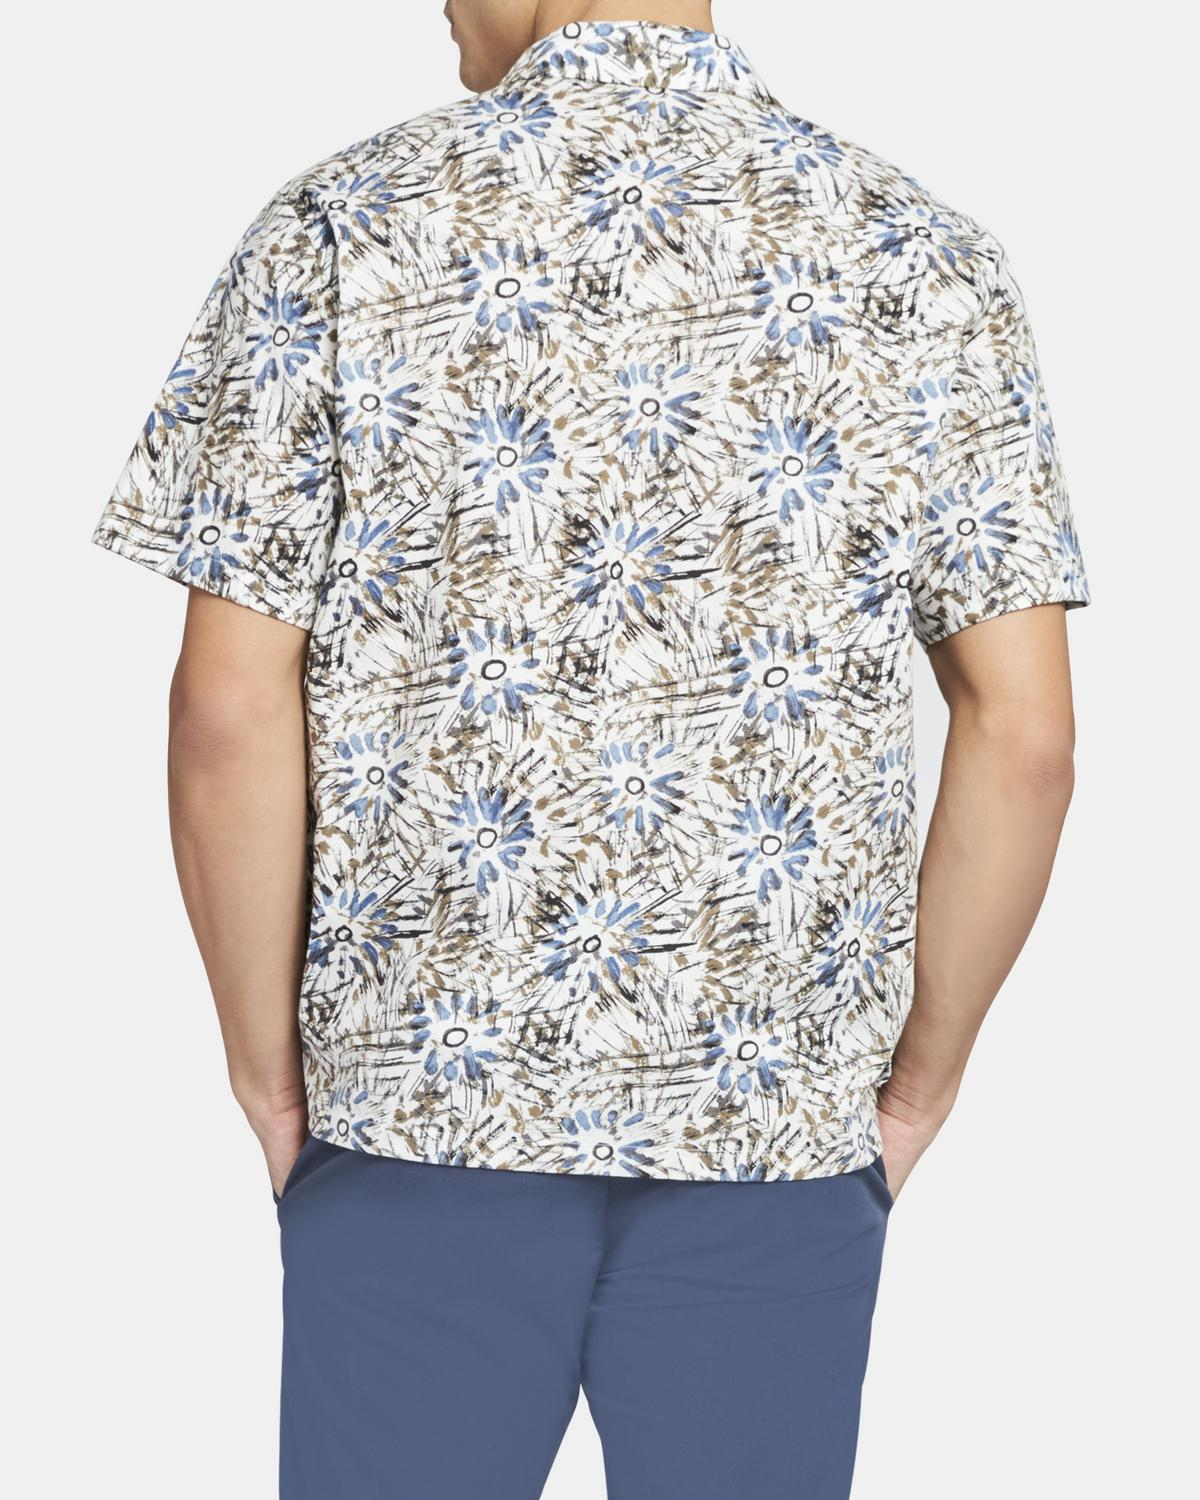 Short-Sleeve Shirt in Sketched Floral Print